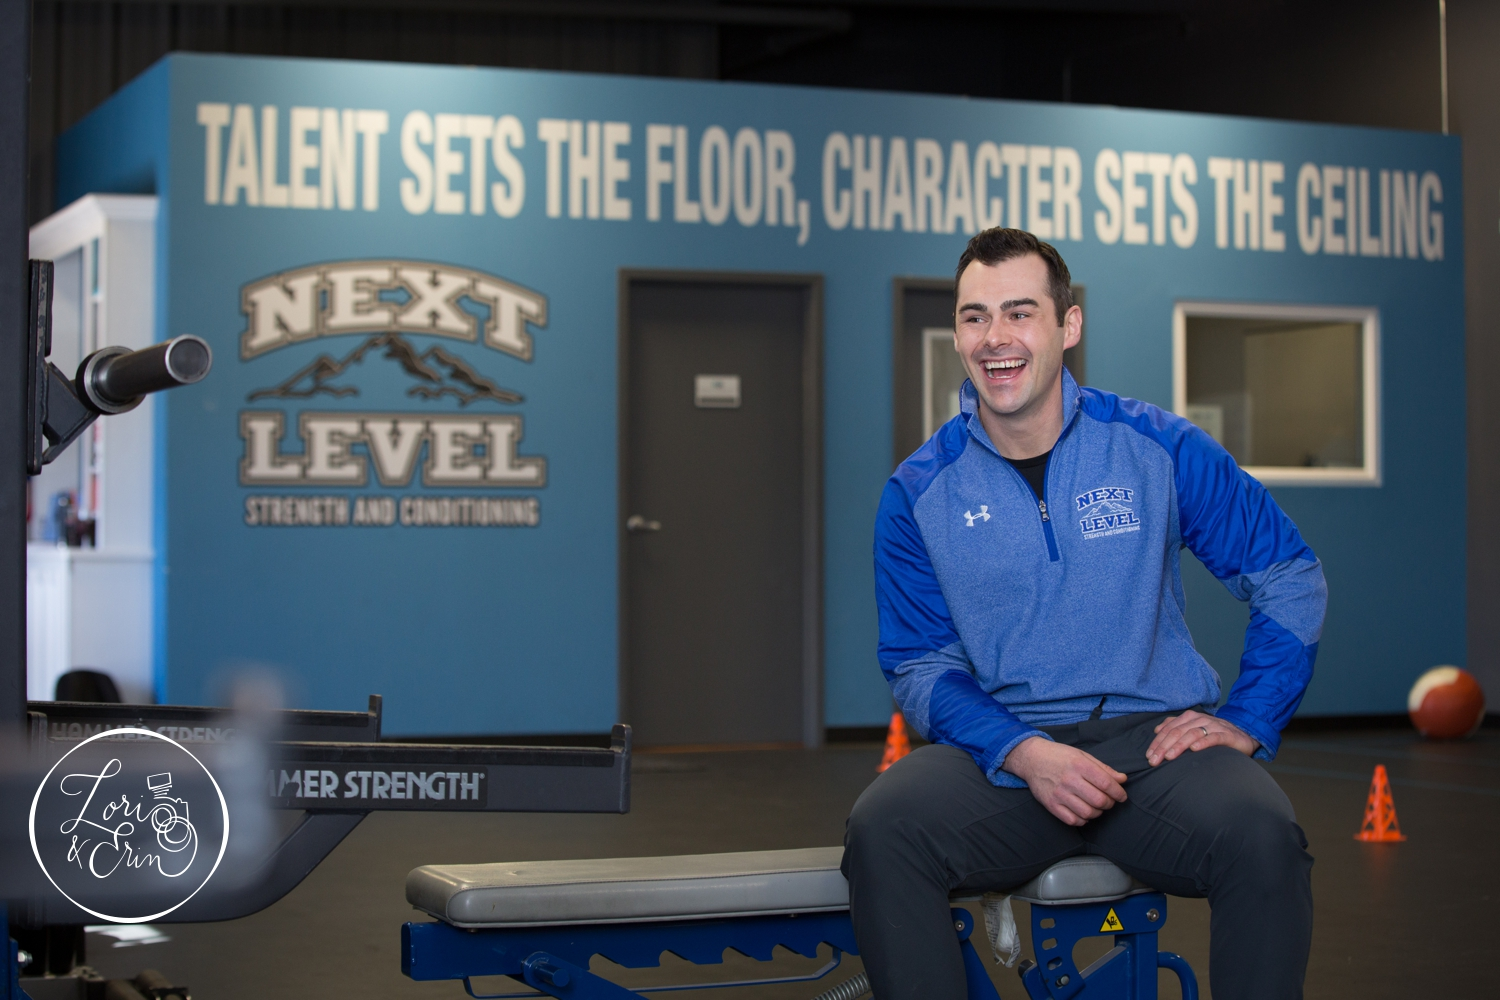 Nate VanKouwenberg, Owner of Next Level Strength and Conditioning in Fairport